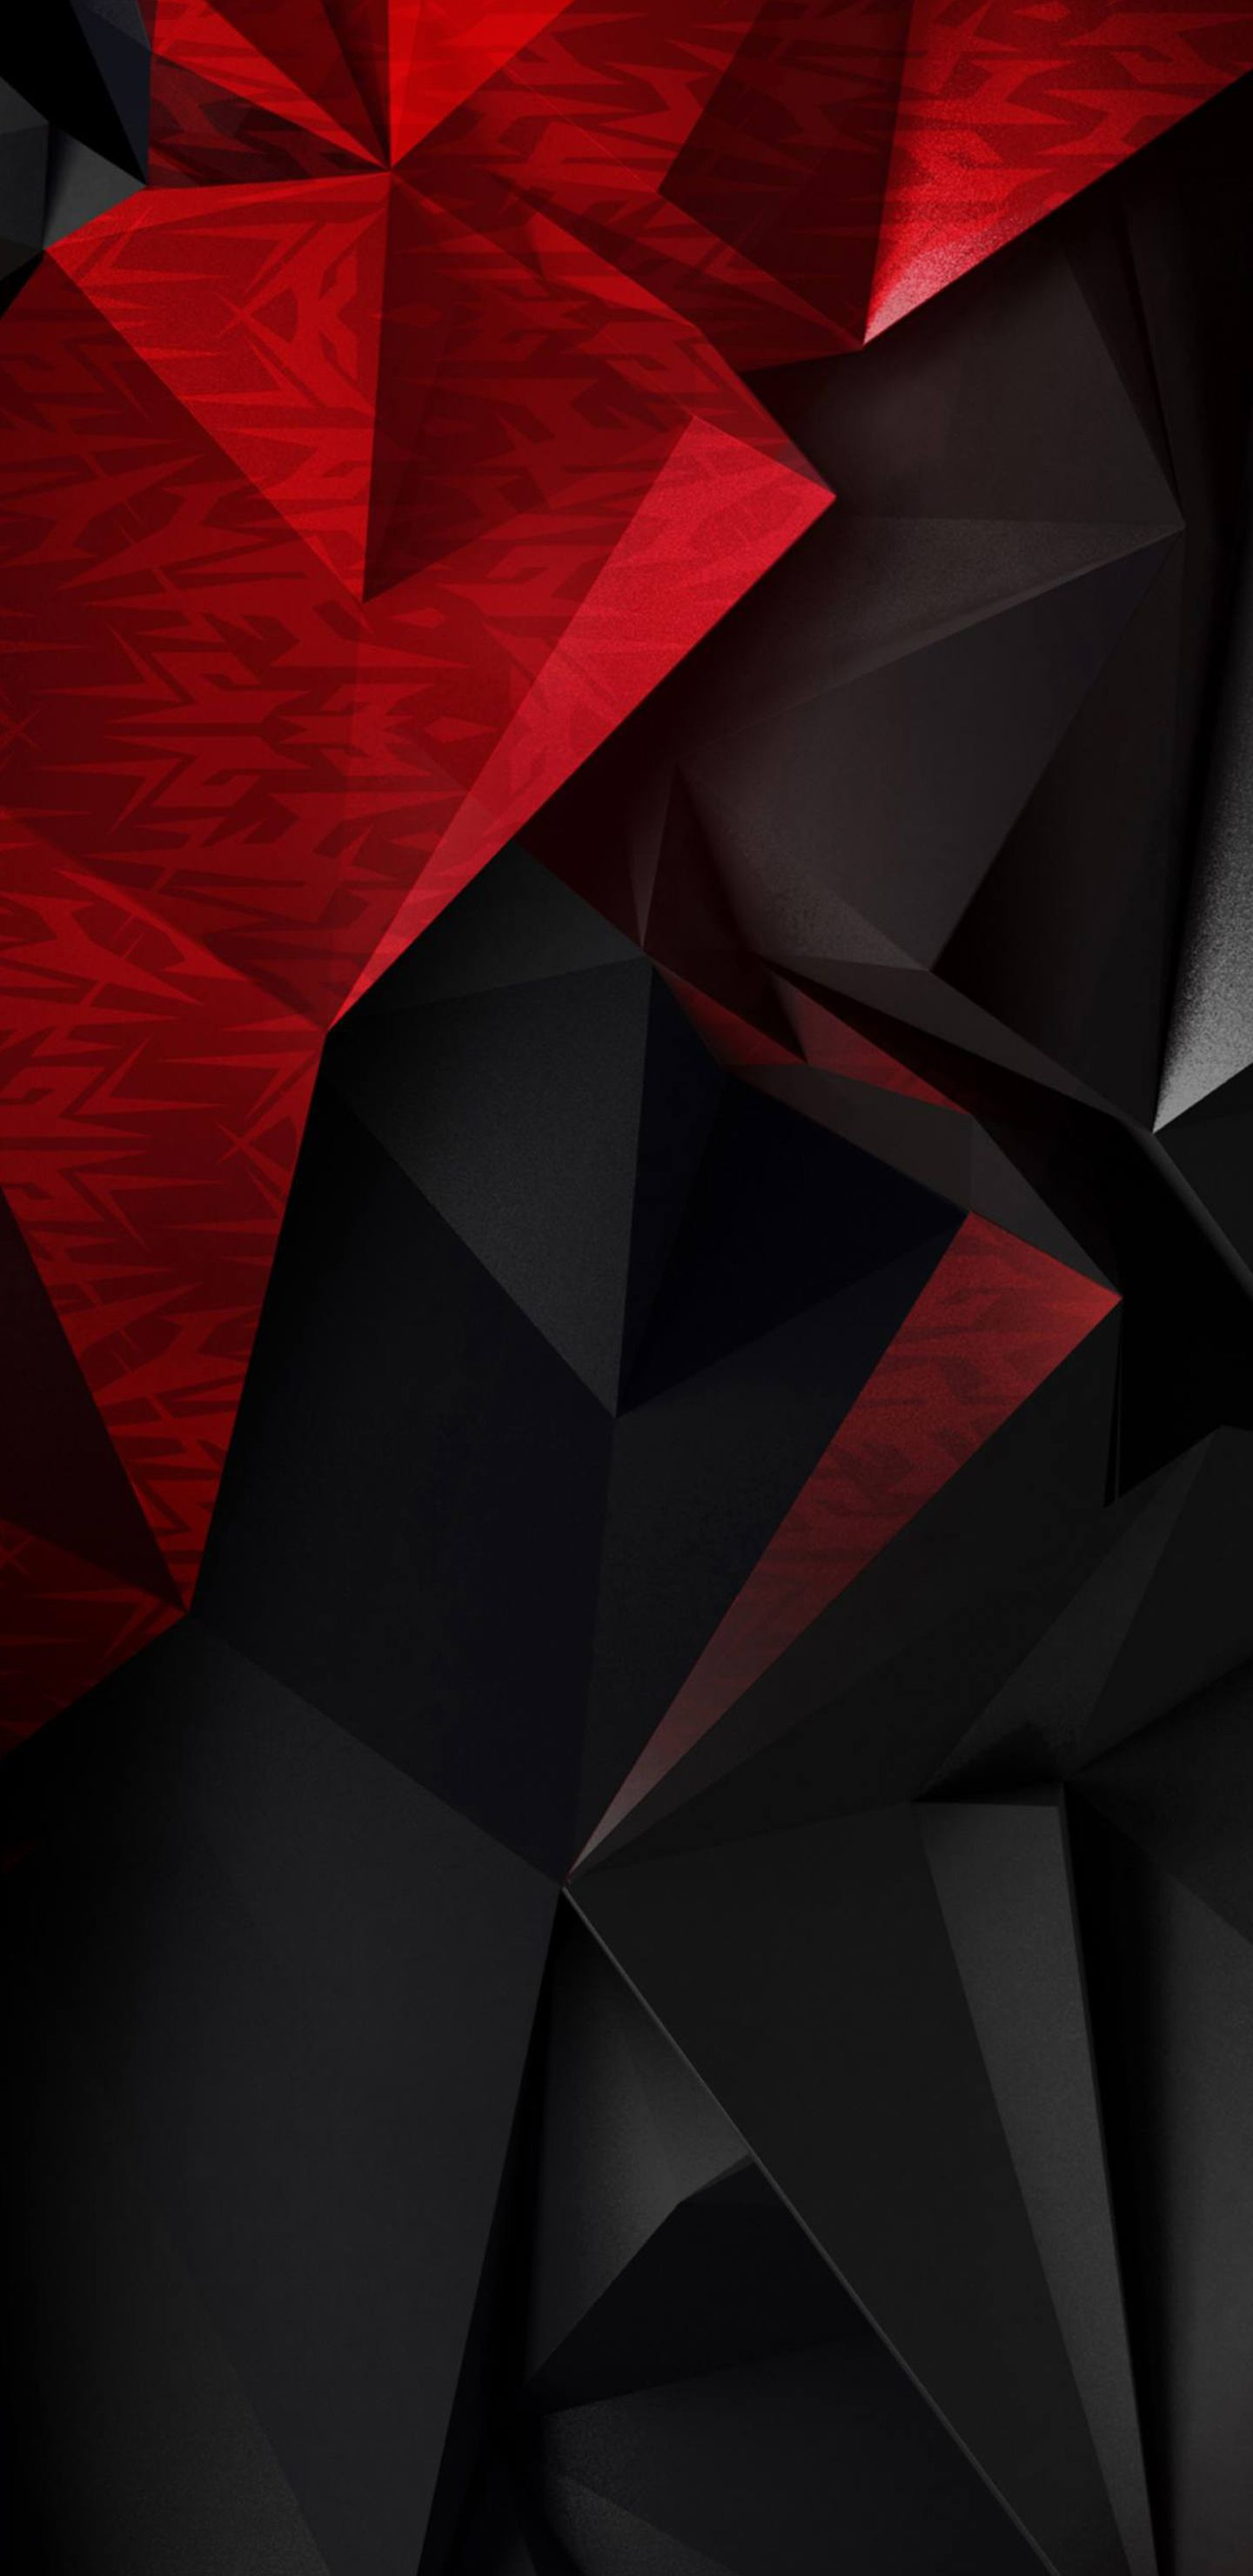 Abstract 3d Red And Black Polygons For Samsung Galaxy S9 Wallpaper Samsung Galaxy Wallpaper Red And Black Wallpaper Samsung Wallpaper